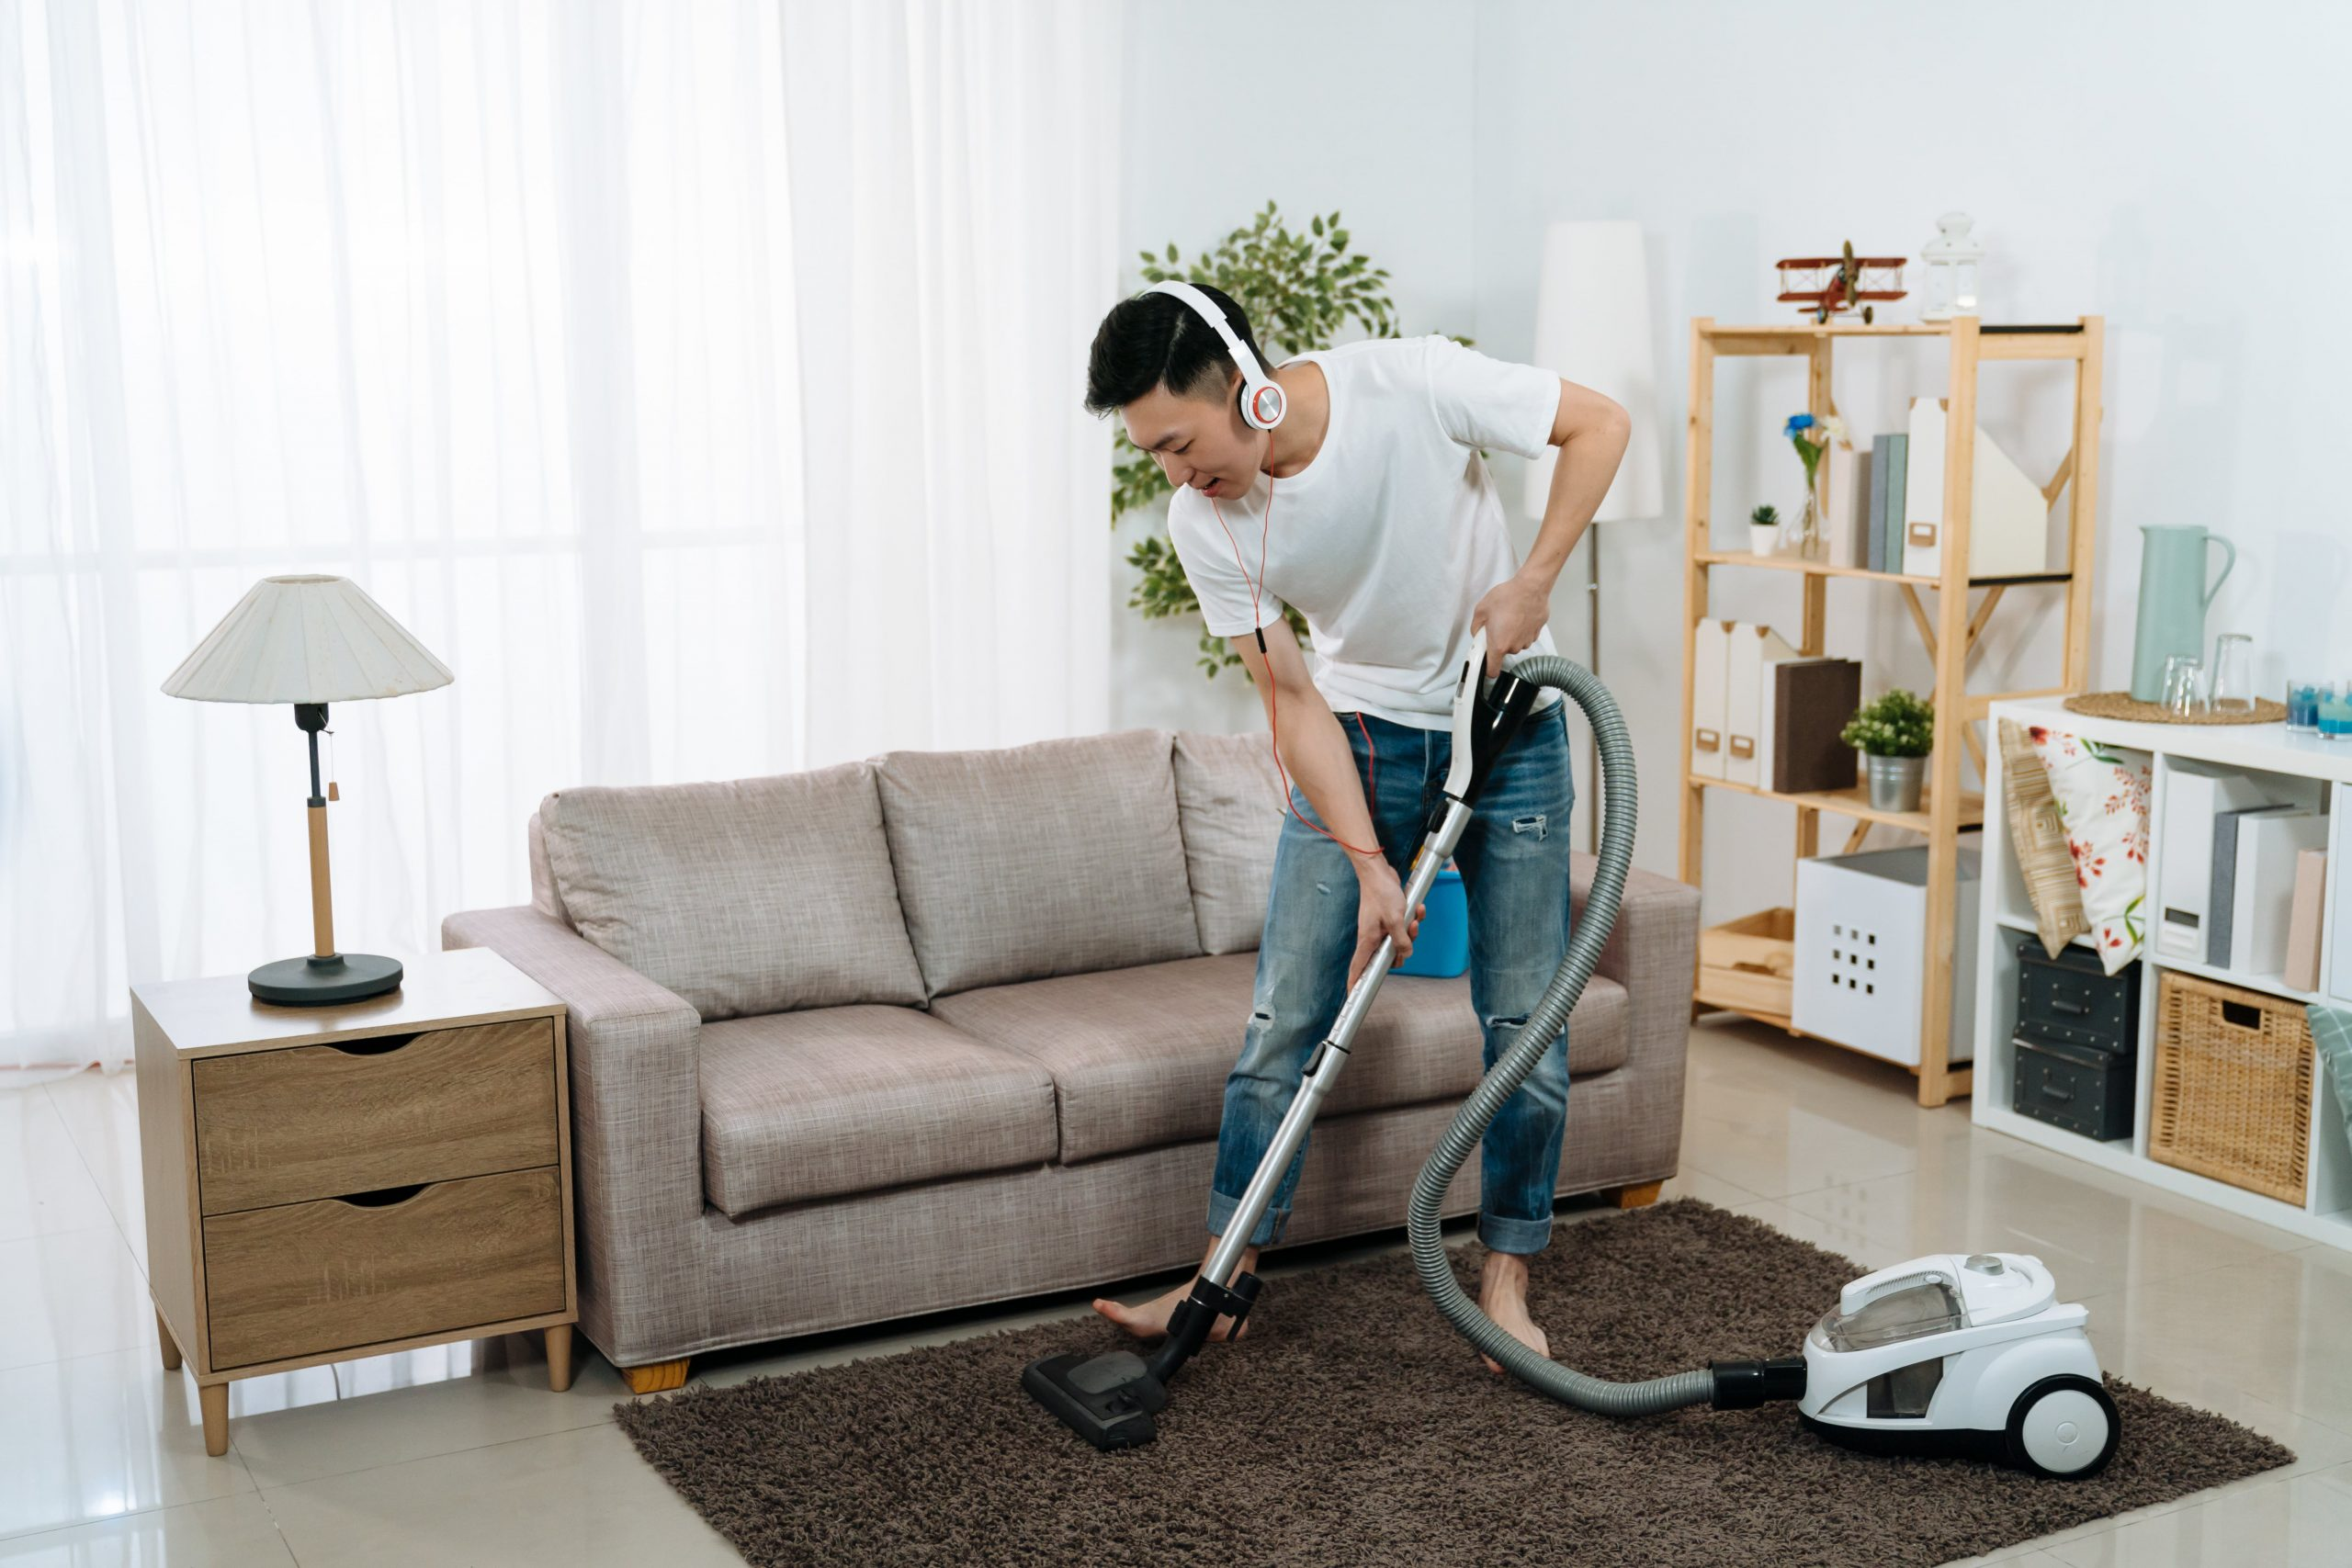 young man vacuuming his apartment